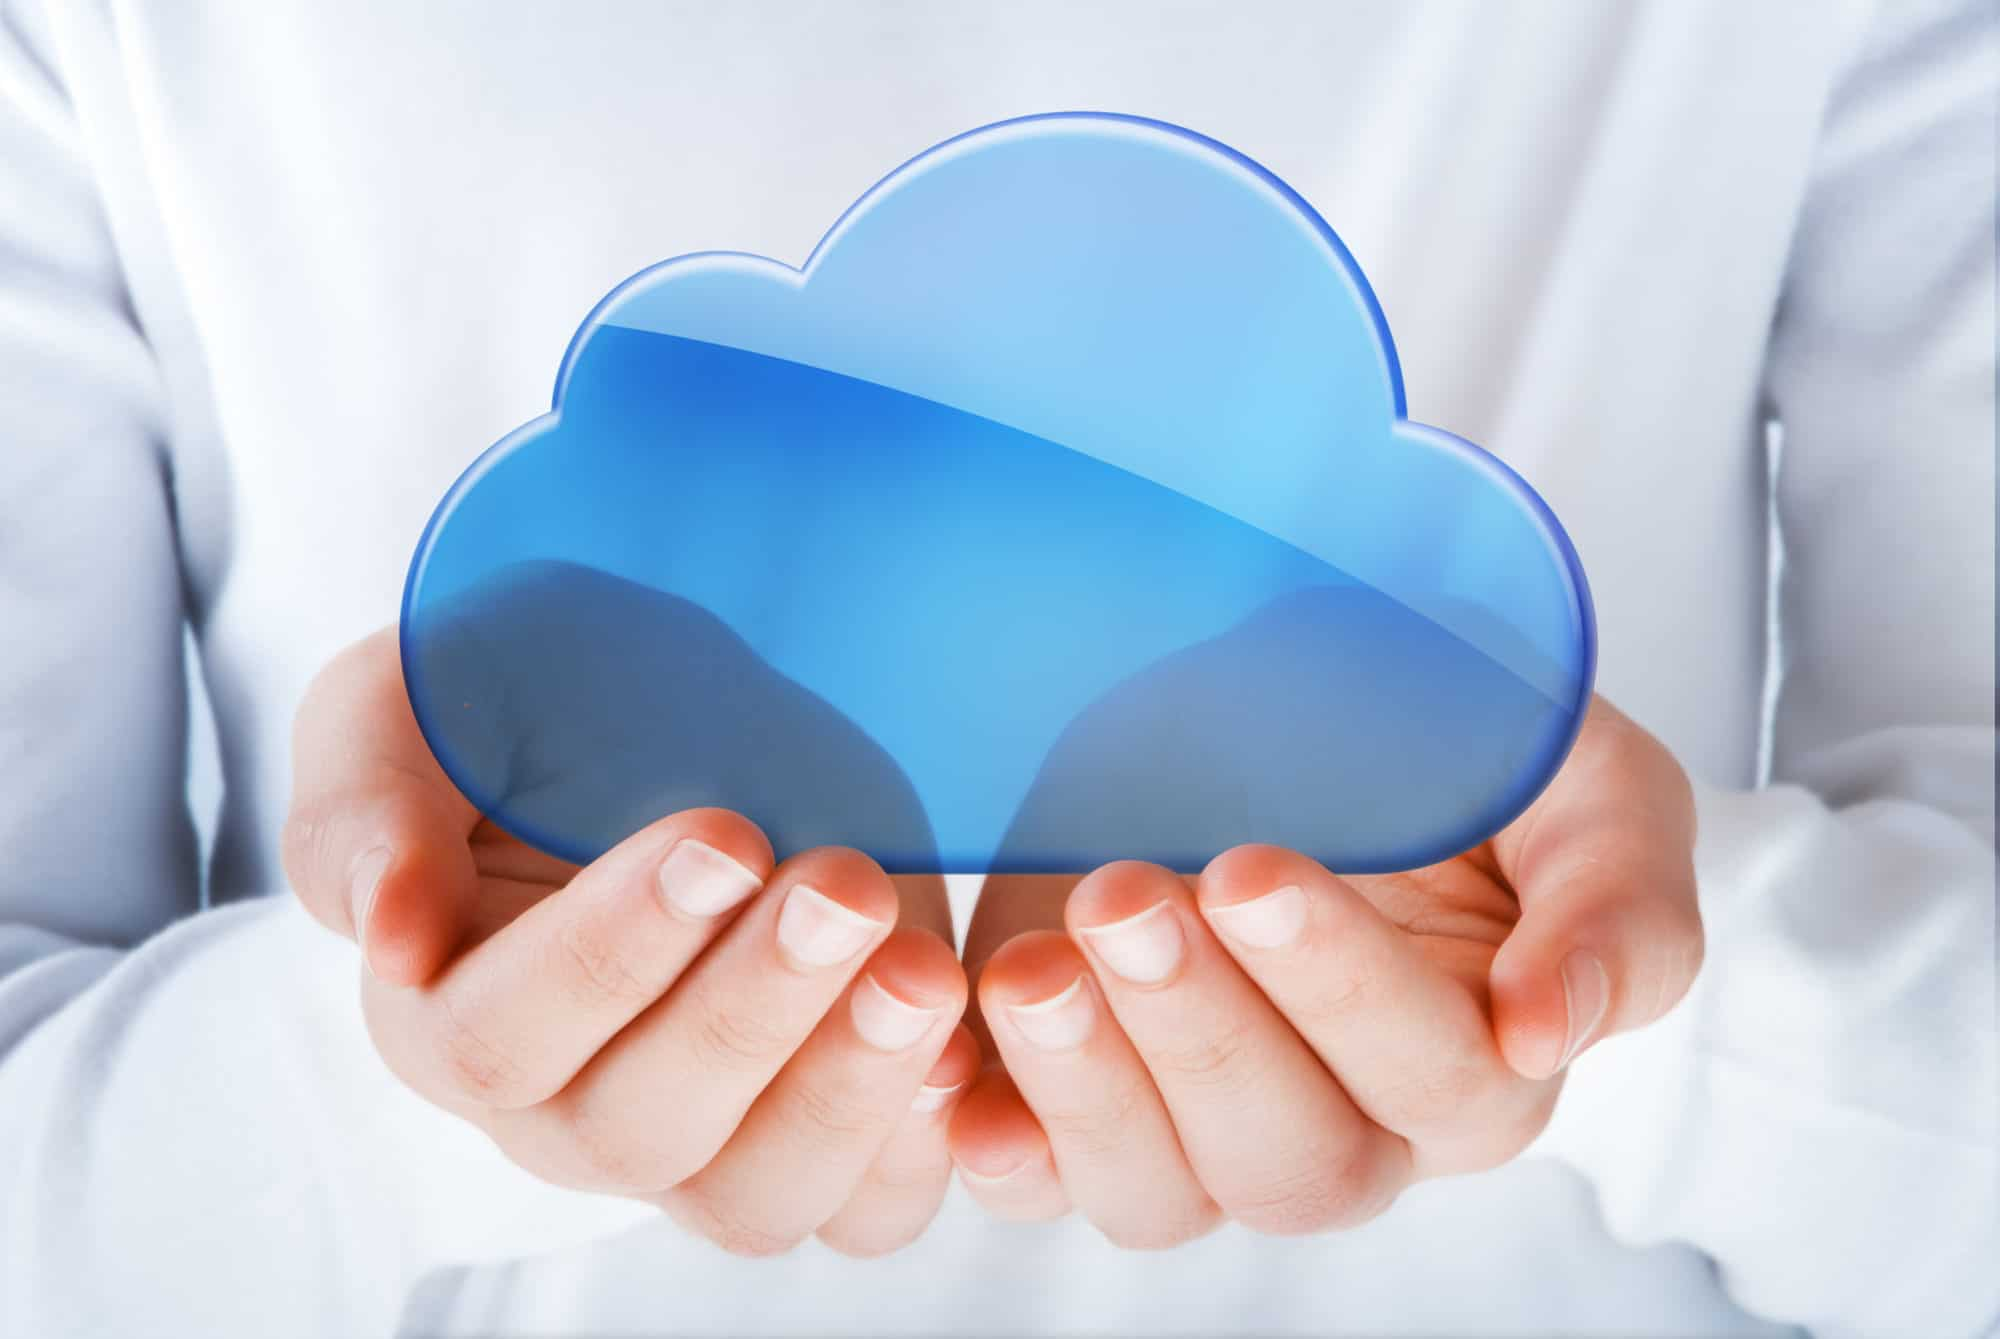 5 Significant Benefits of Having an IT Pro Customize Your Cloud Apps